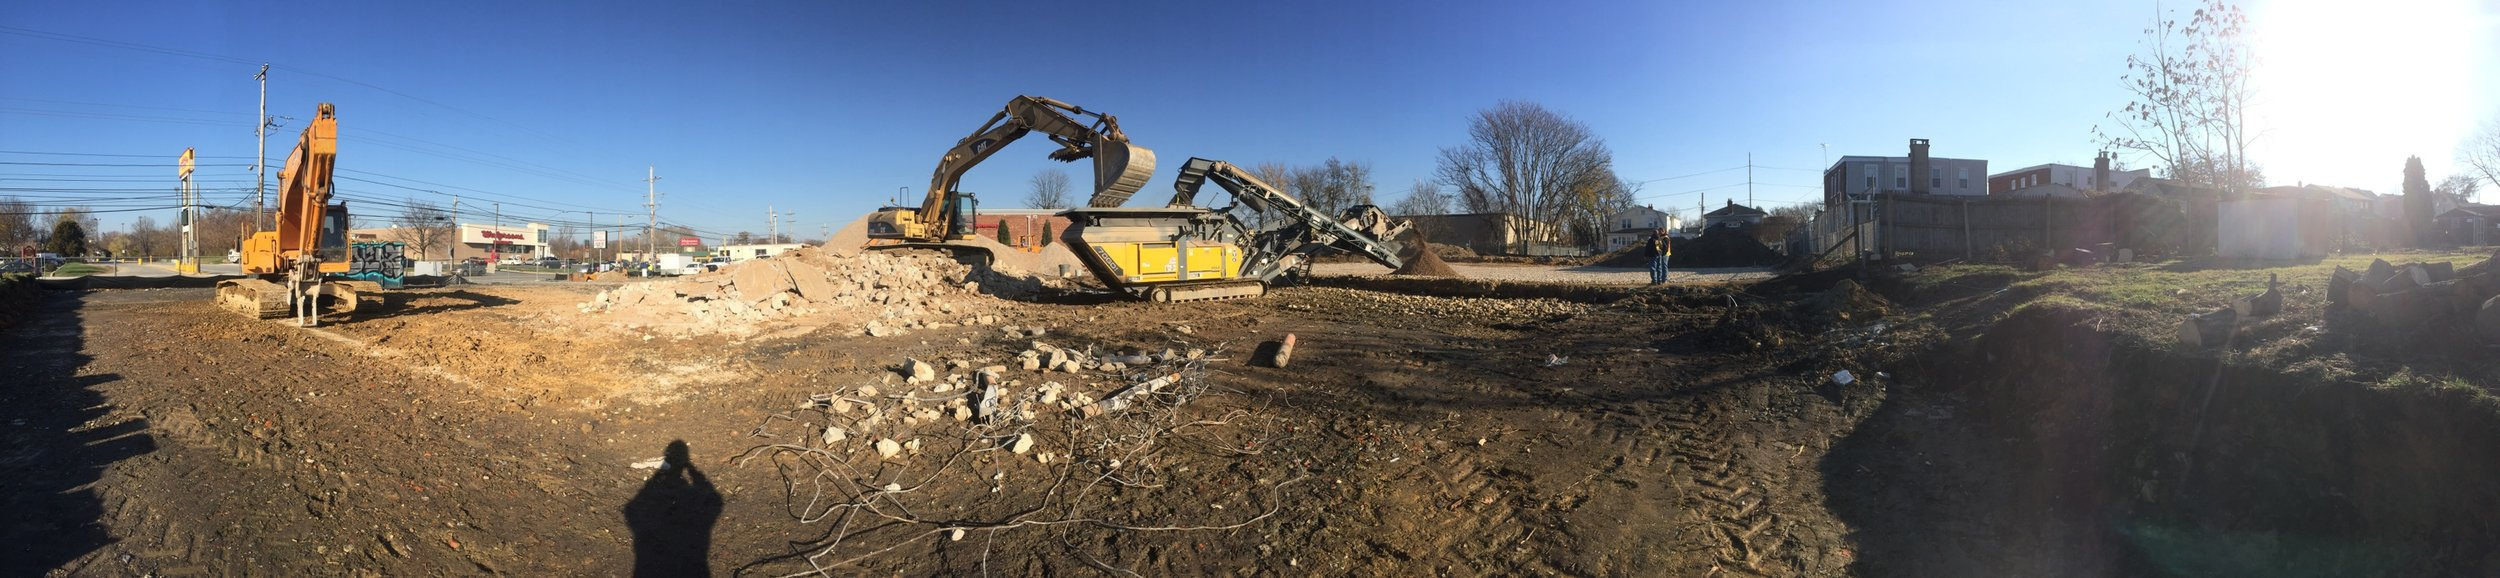 Royal Farms #221 - Crushing & Fill Material